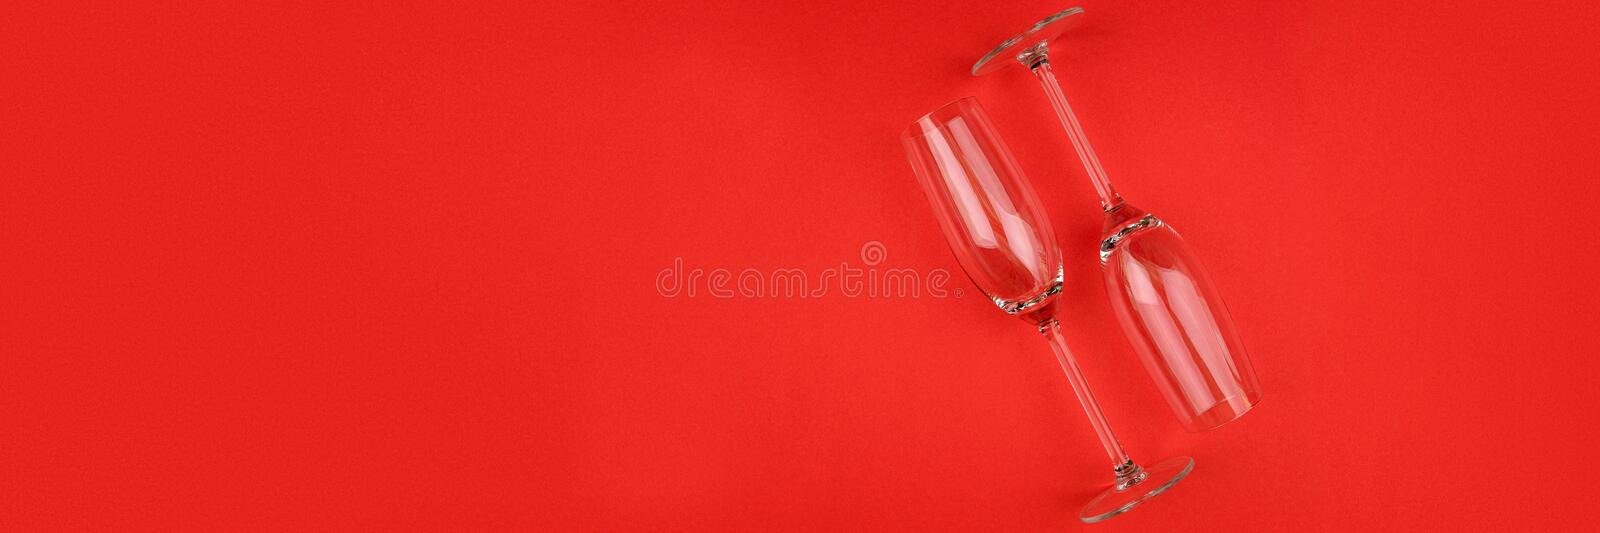 Banner 3:1 for Web. Wineglasses for champagne lying on red paper background. New Year celebration concept. stock images